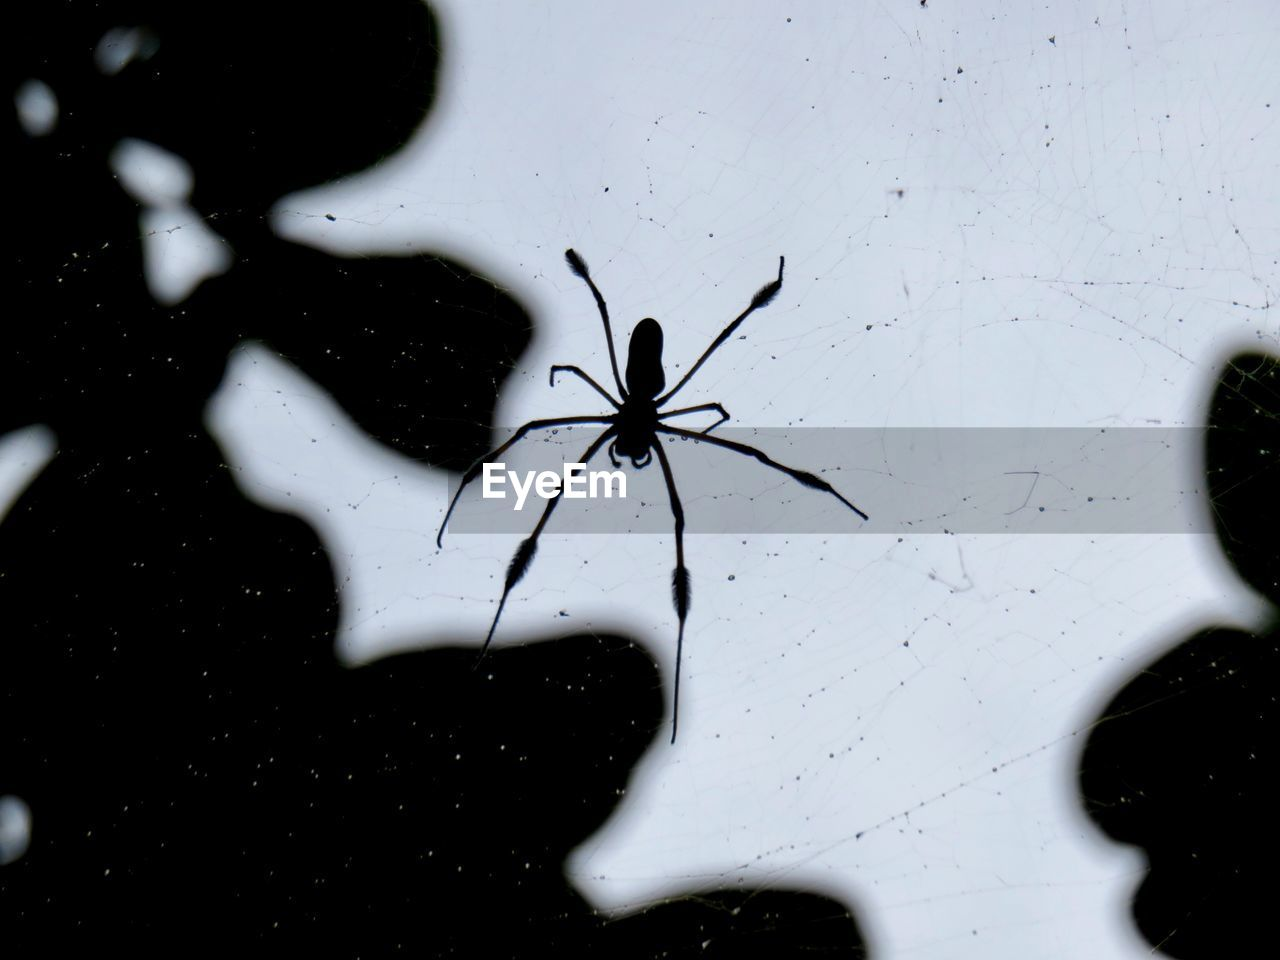 invertebrate, arachnid, animal themes, arthropod, no people, animal, spider, close-up, animals in the wild, one animal, animal wildlife, insect, indoors, white color, glass - material, window, full frame, water, nature, animal leg